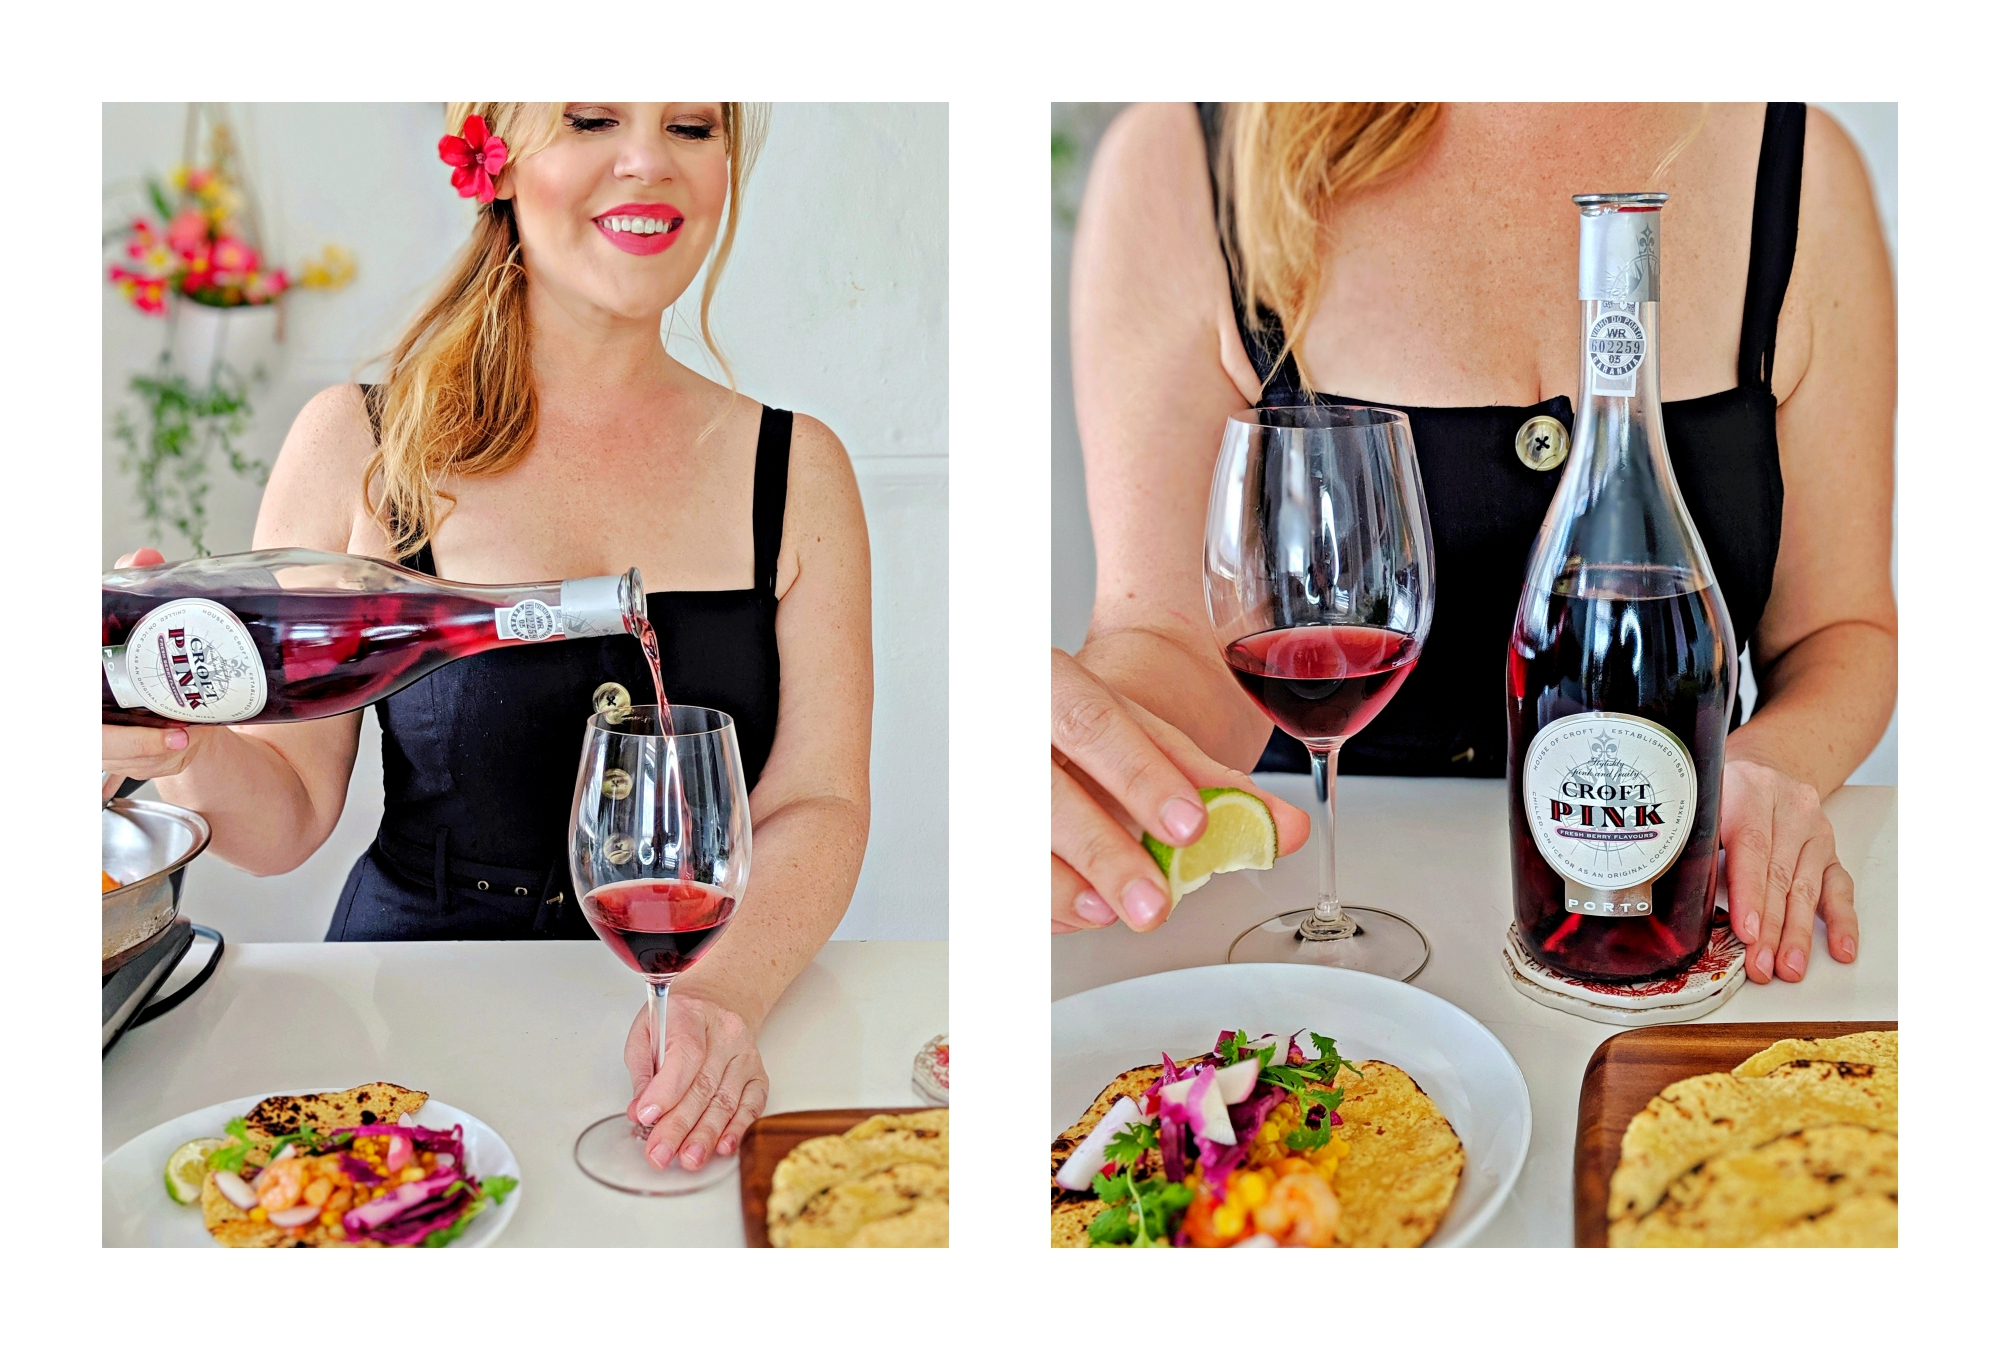 Wine pairing fun: rose port paired with Shrimp tacos!